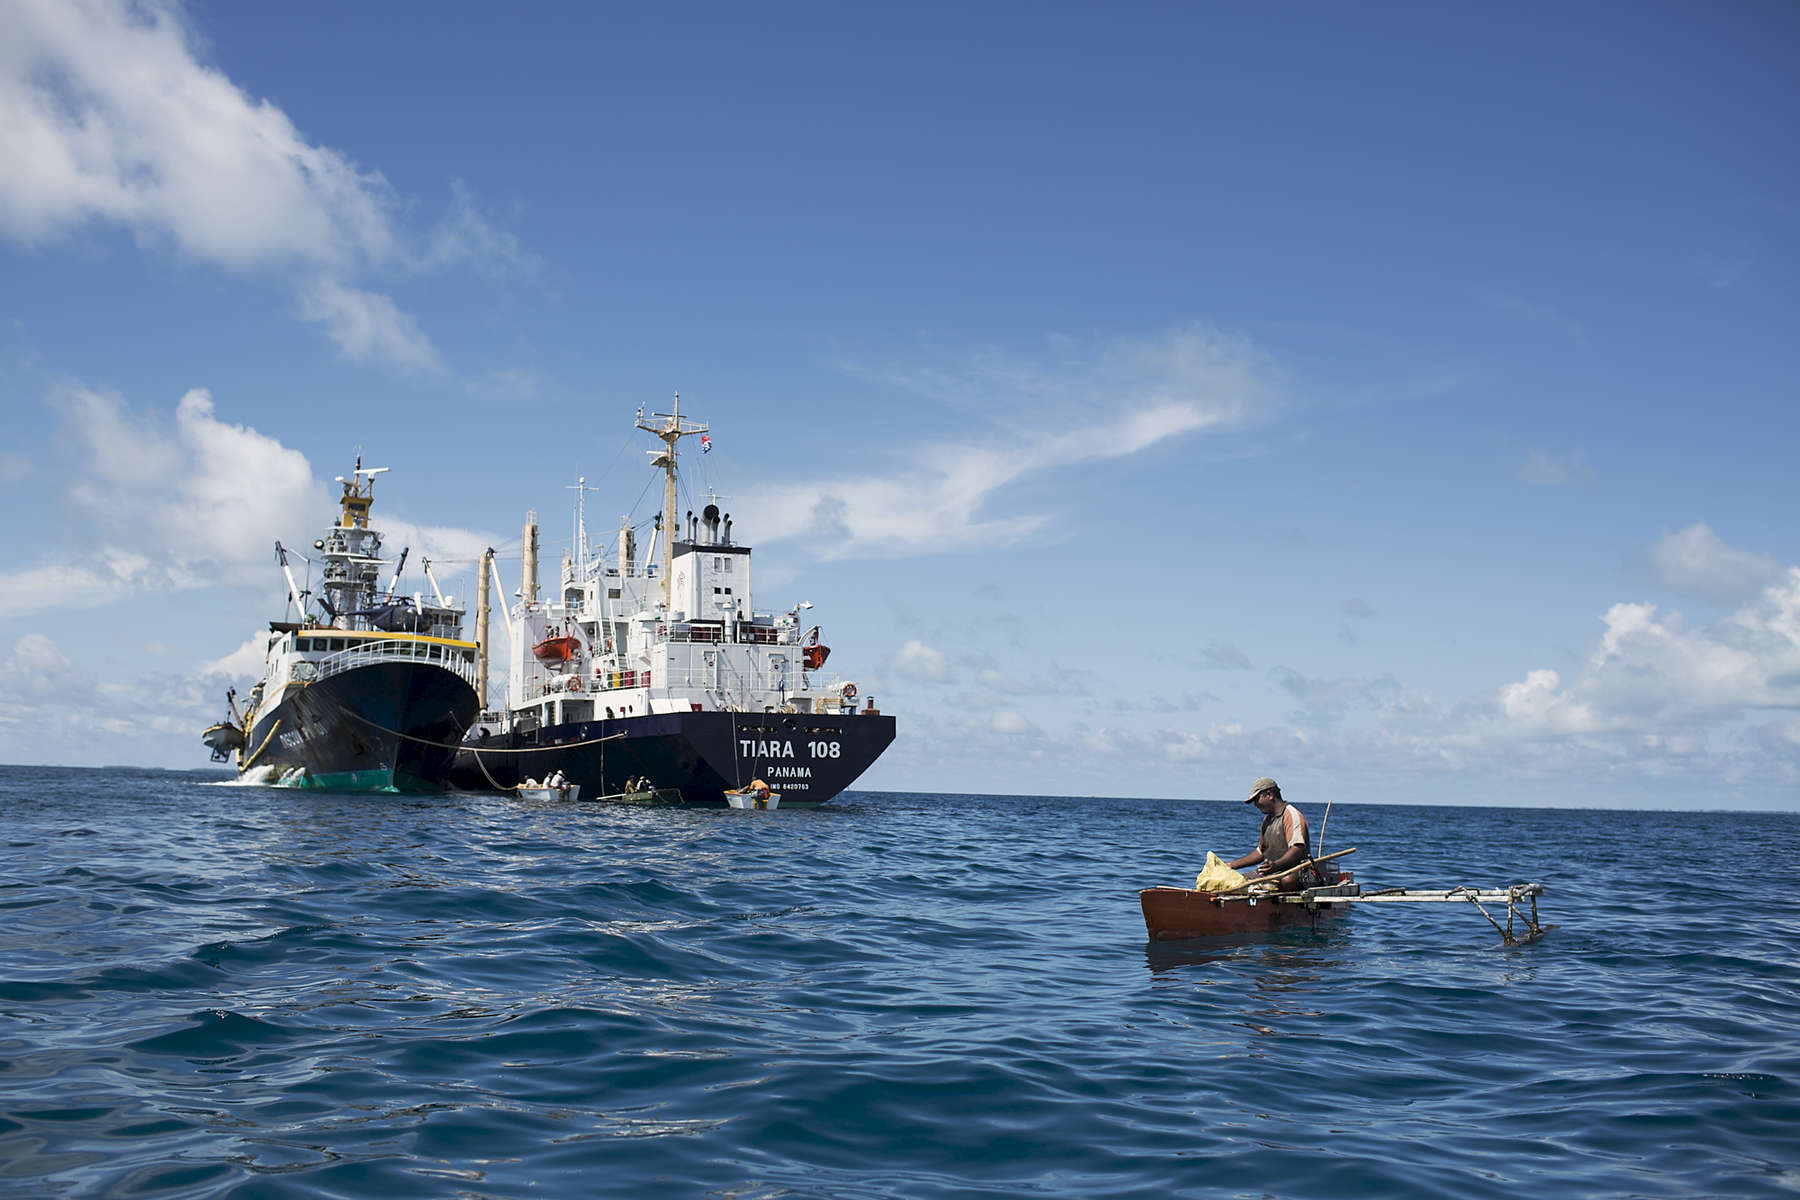 A fisherman on a small canoe fishes closeto an overseas fishing vessel. The Kiribati government have sold licenses to commercial fishing fleets from South Korea, Taiwan, Japan, United States and Spain. The most common fish caught by the commercial vessels are 54% big eye tuna, 34% yellow fin tuna, 2% marlin and 10% other (Source SPC).